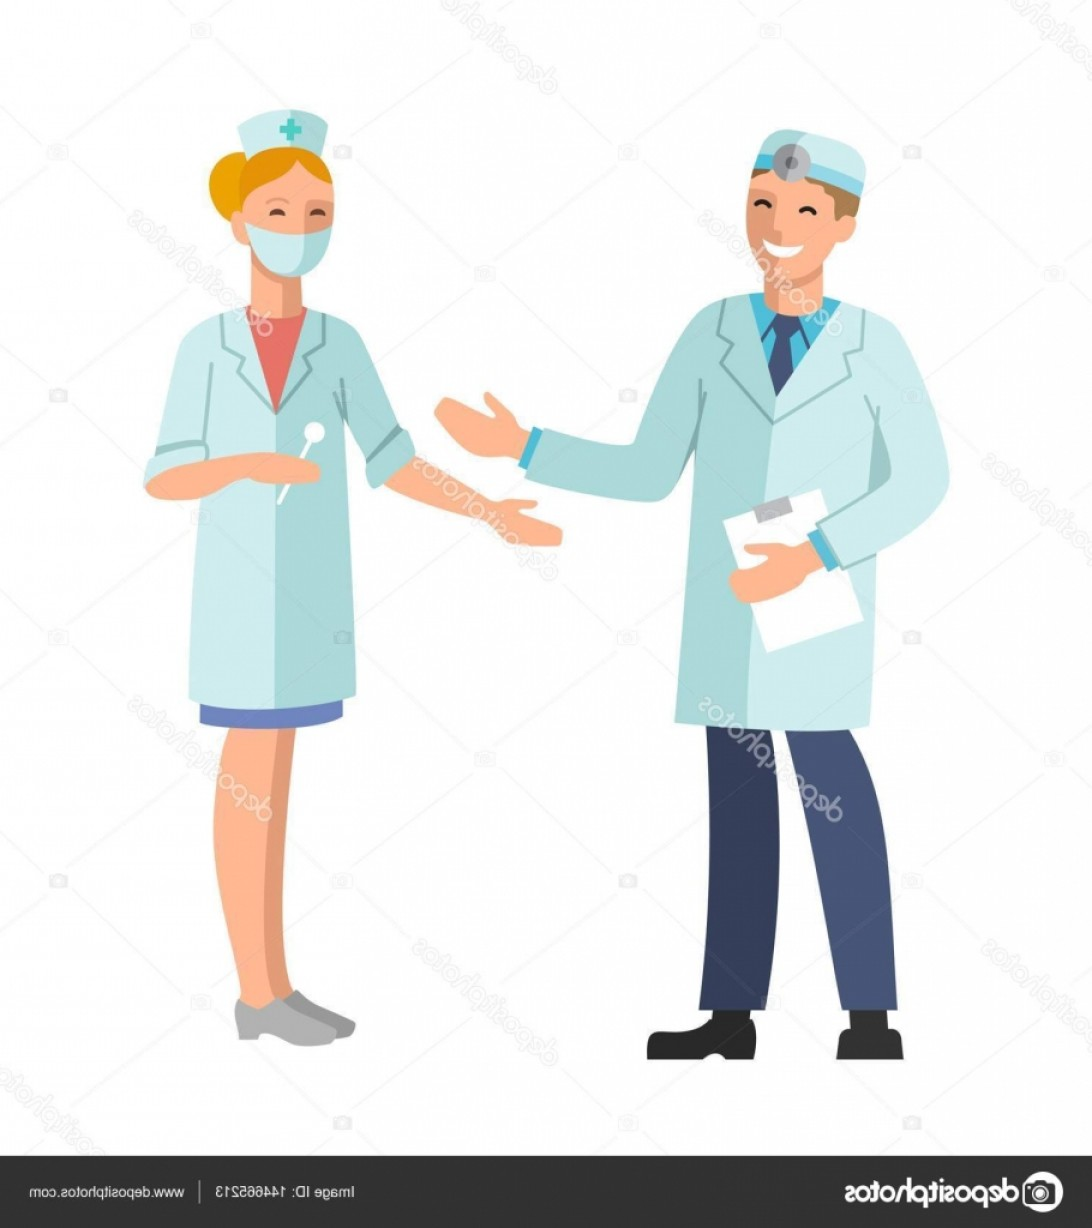 Nurse Juggling Vector: Stock Illustration Doctor And Nurse Vector Illustration